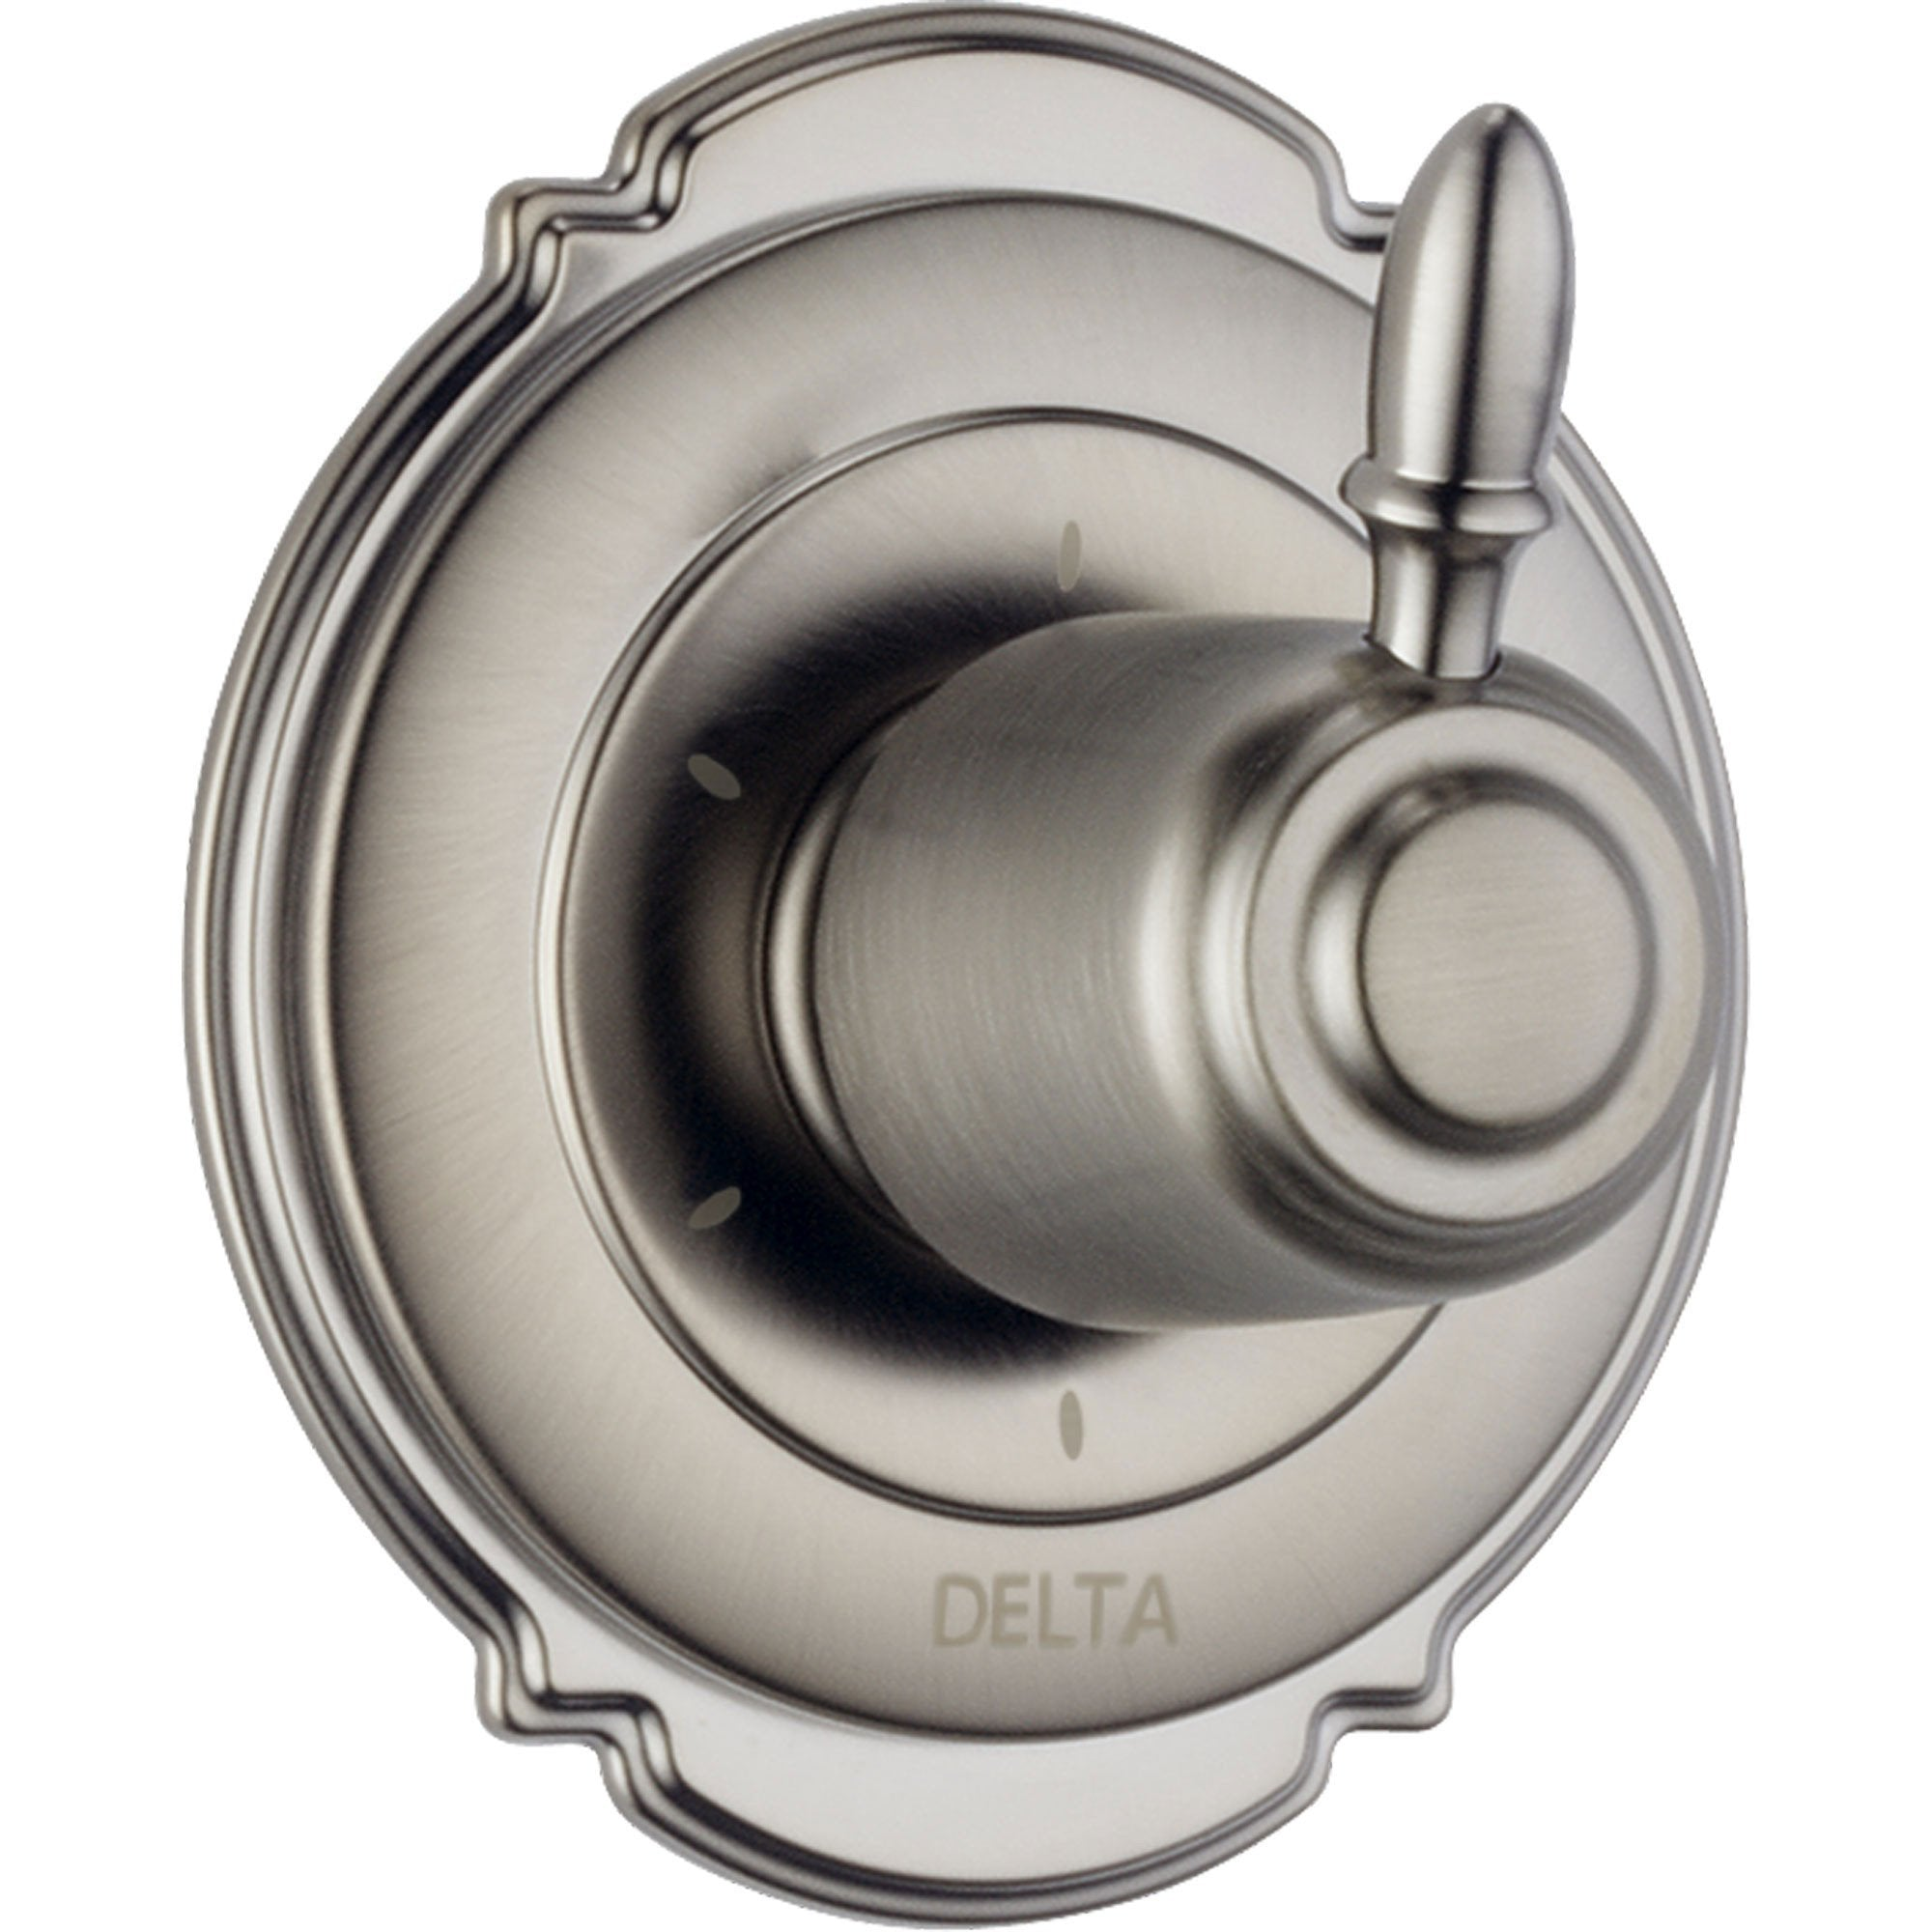 Delta Victorian 6-Setting Stainless Steel Finish Shower Diverter w/ Valve D158V